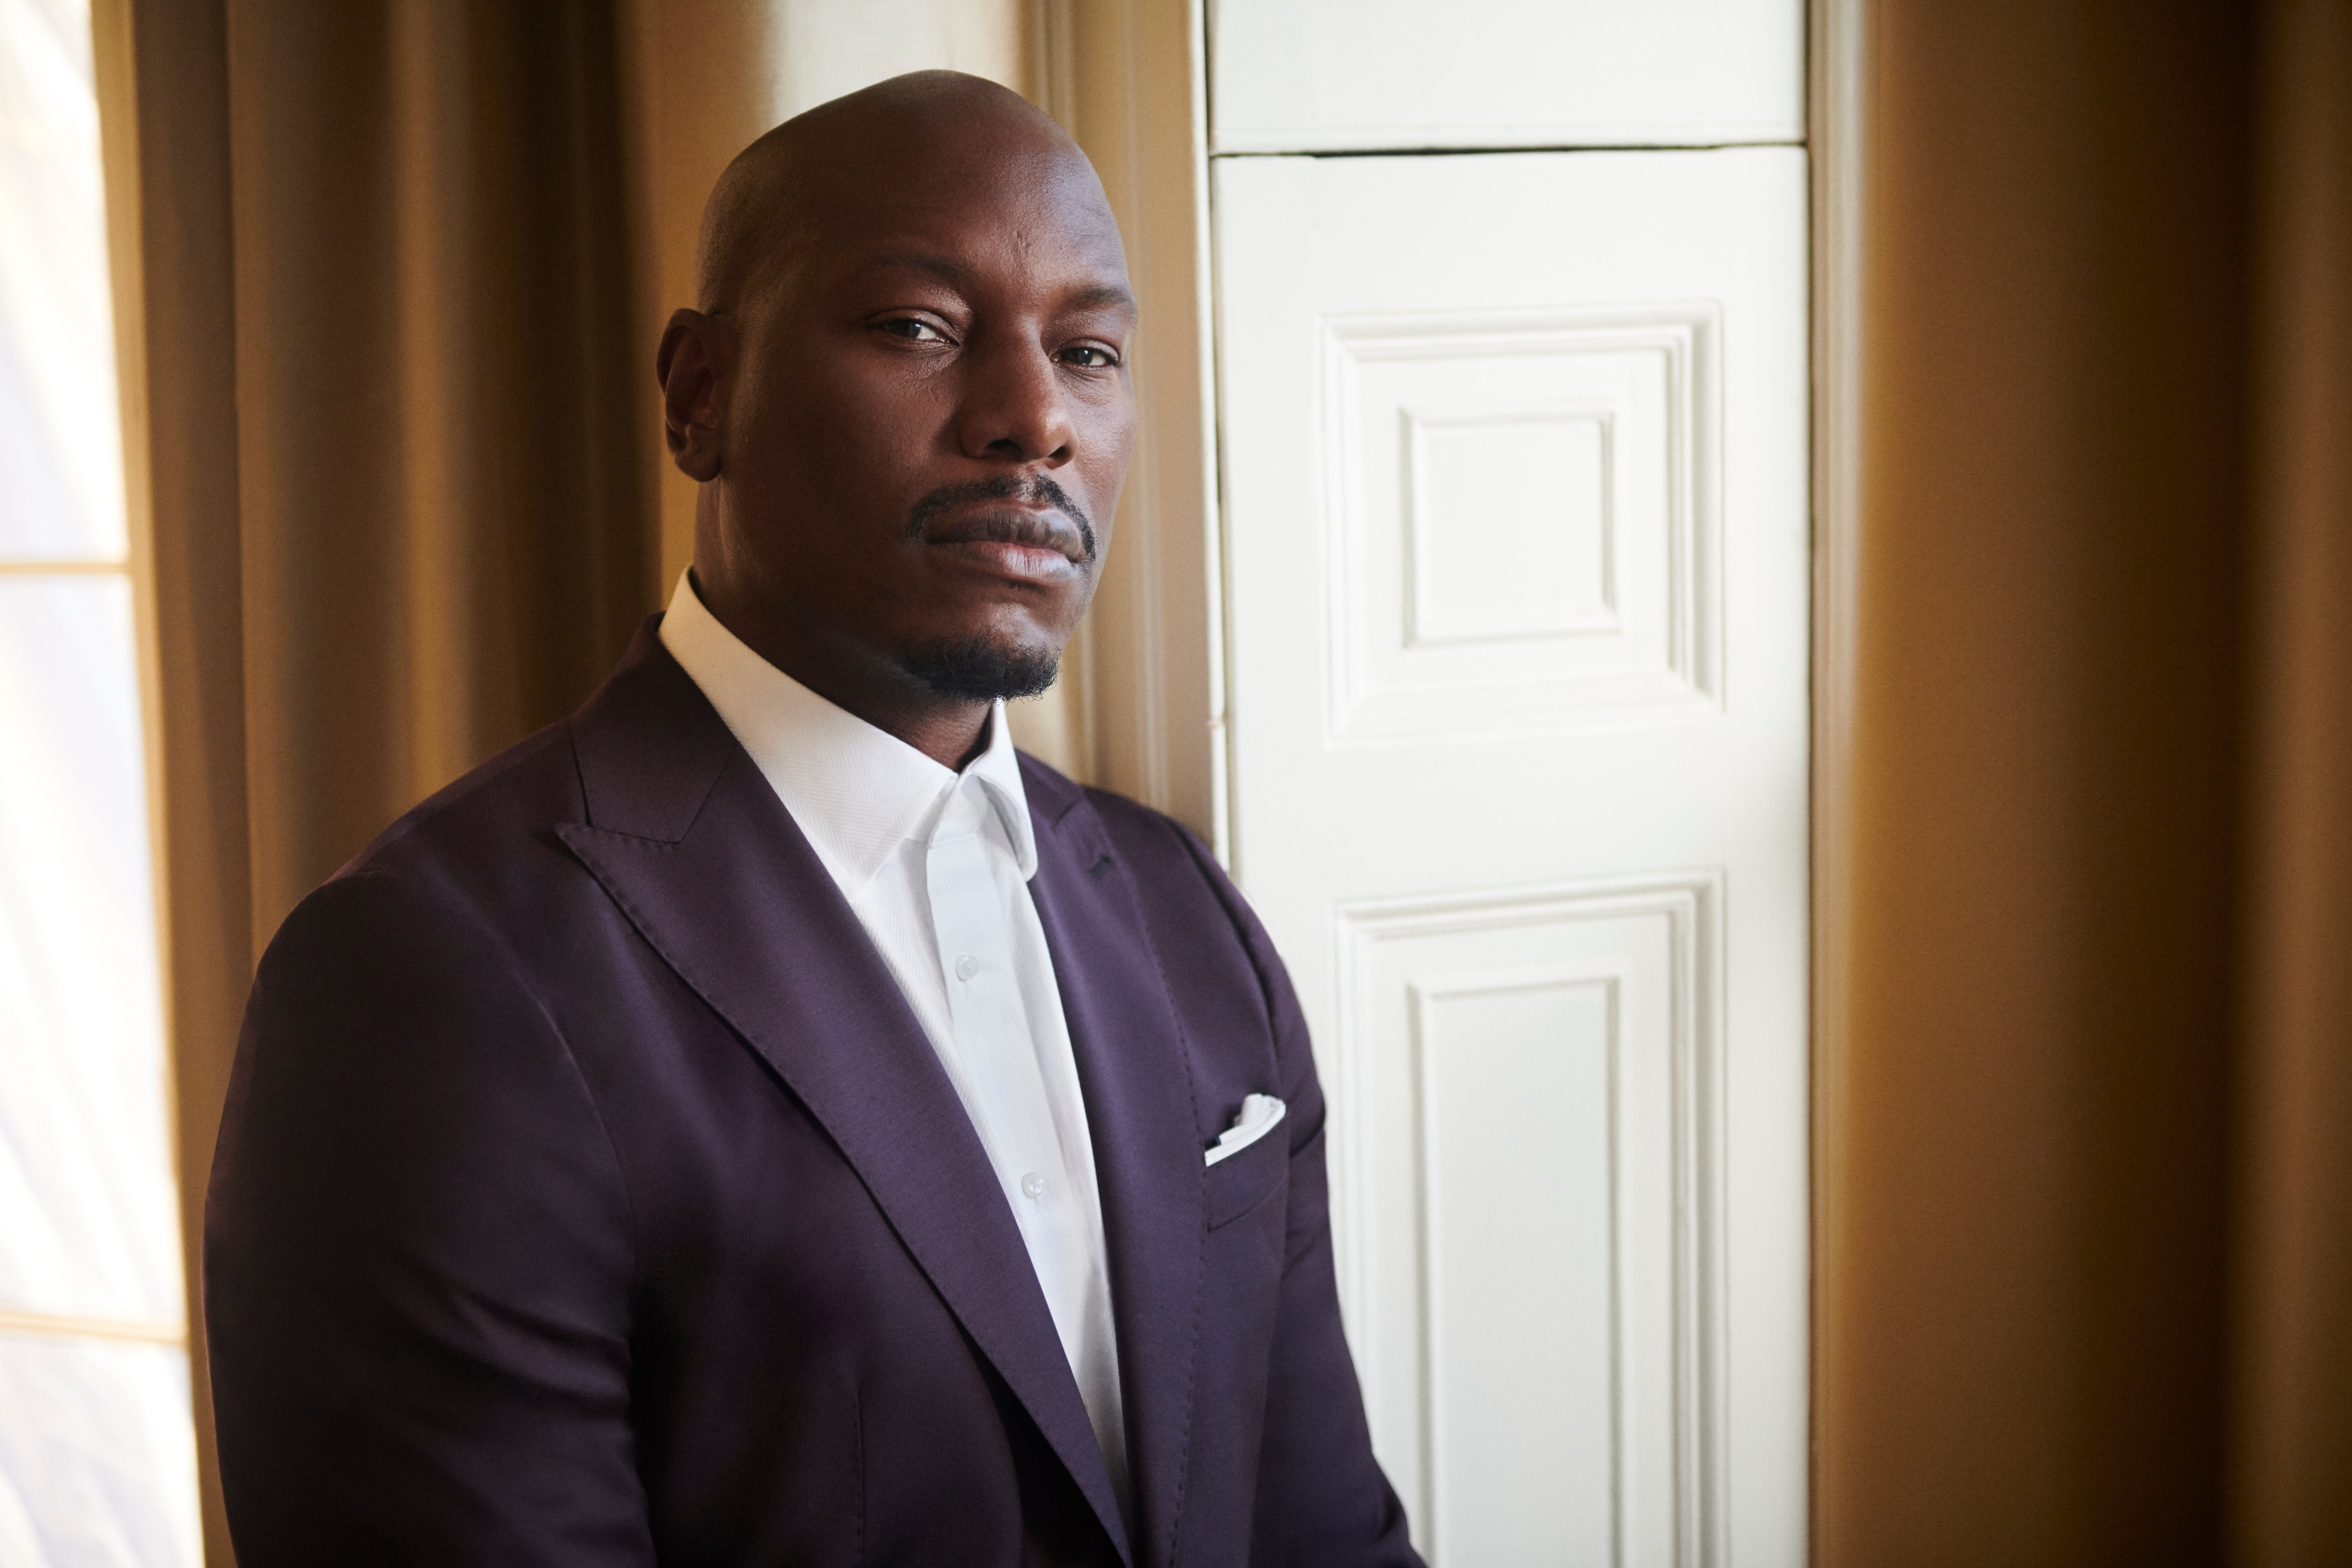 Tyrese Credits His Faith For Fixing The 'Mess' In His Life